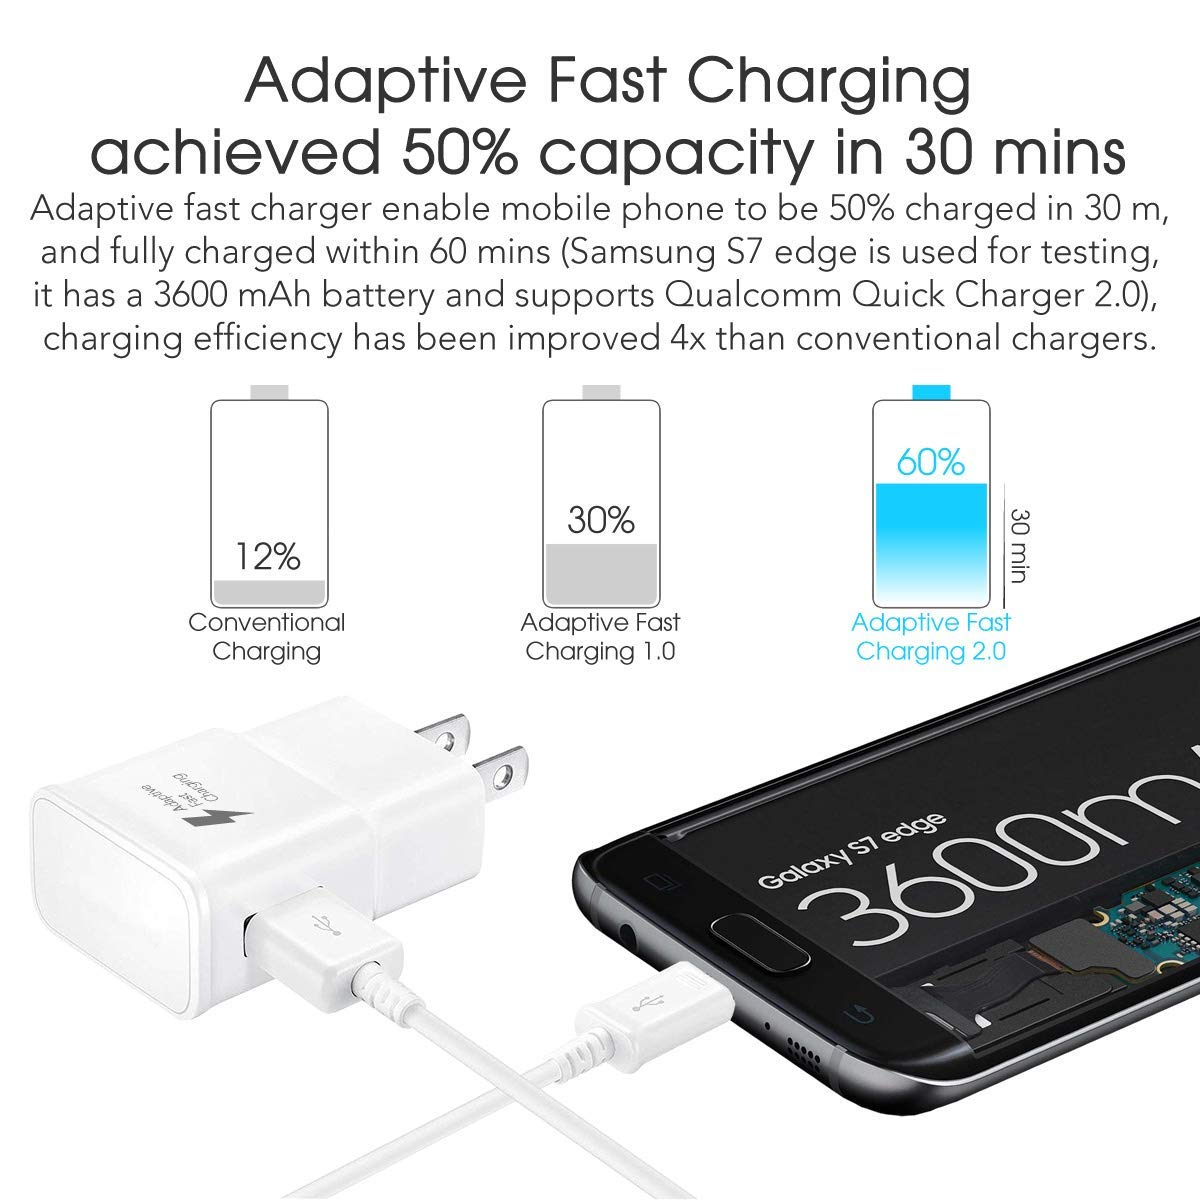 Samsung Galaxy S7 Adaptive Fast Charging Wall Charger Kit Set with 4-Feet Micro USB Cable Cord Compatible with Samsung Galaxy S7 Edge S6 Plus Note5 4 ...